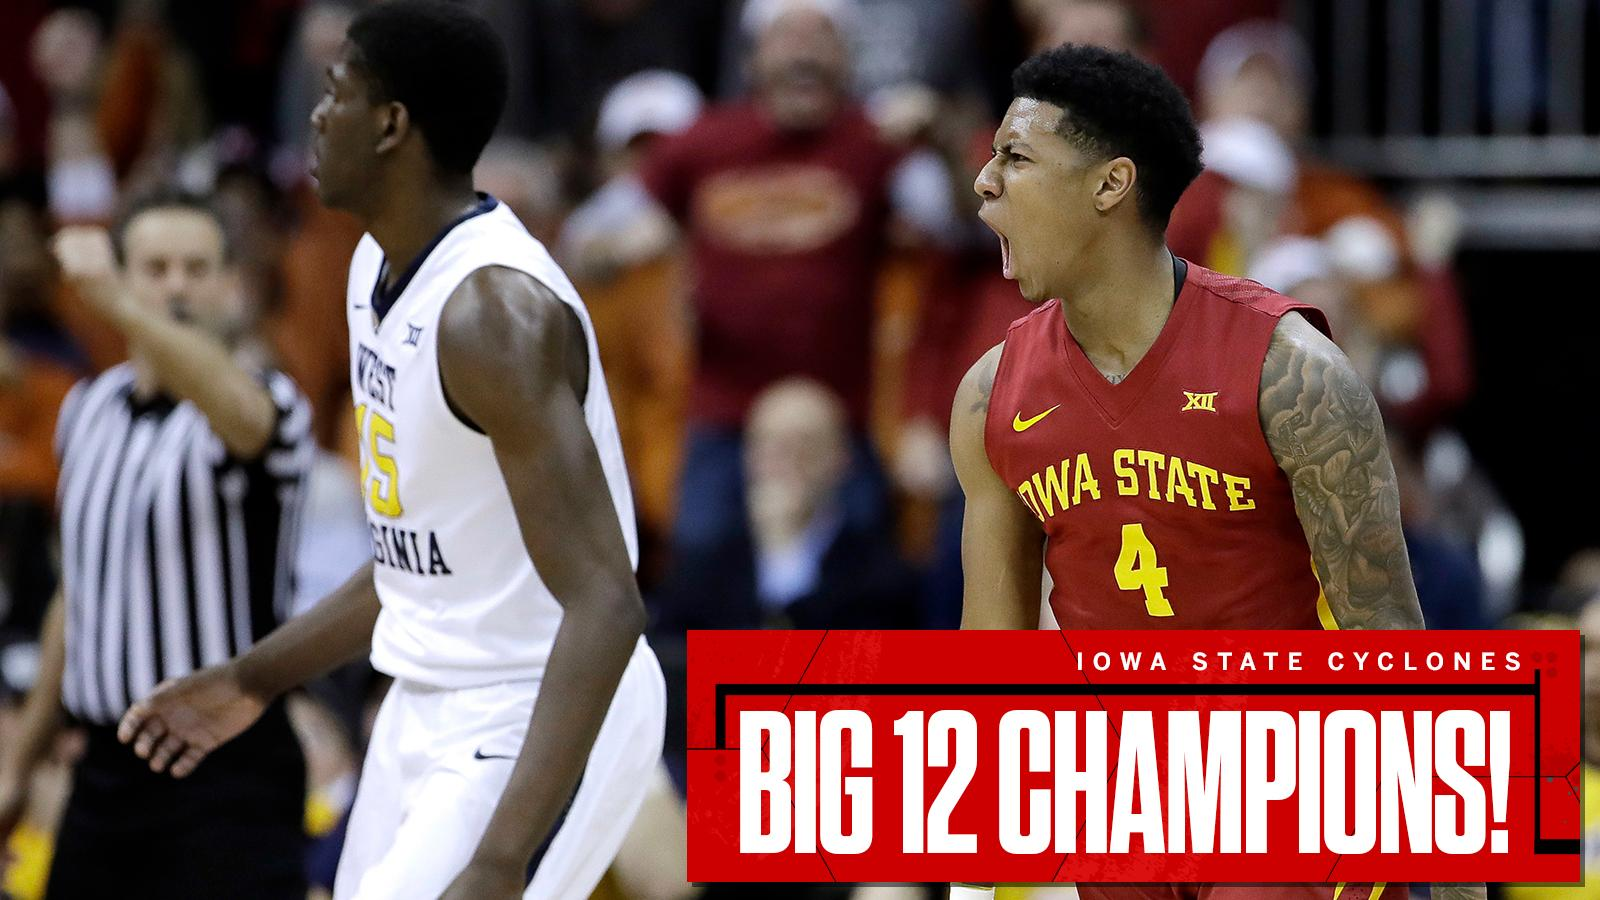 Hilton South!  The Cyclones beat West Virginia to win the Big 12 tournament title for the third time in four years. https://t.co/k21RkrTk3u